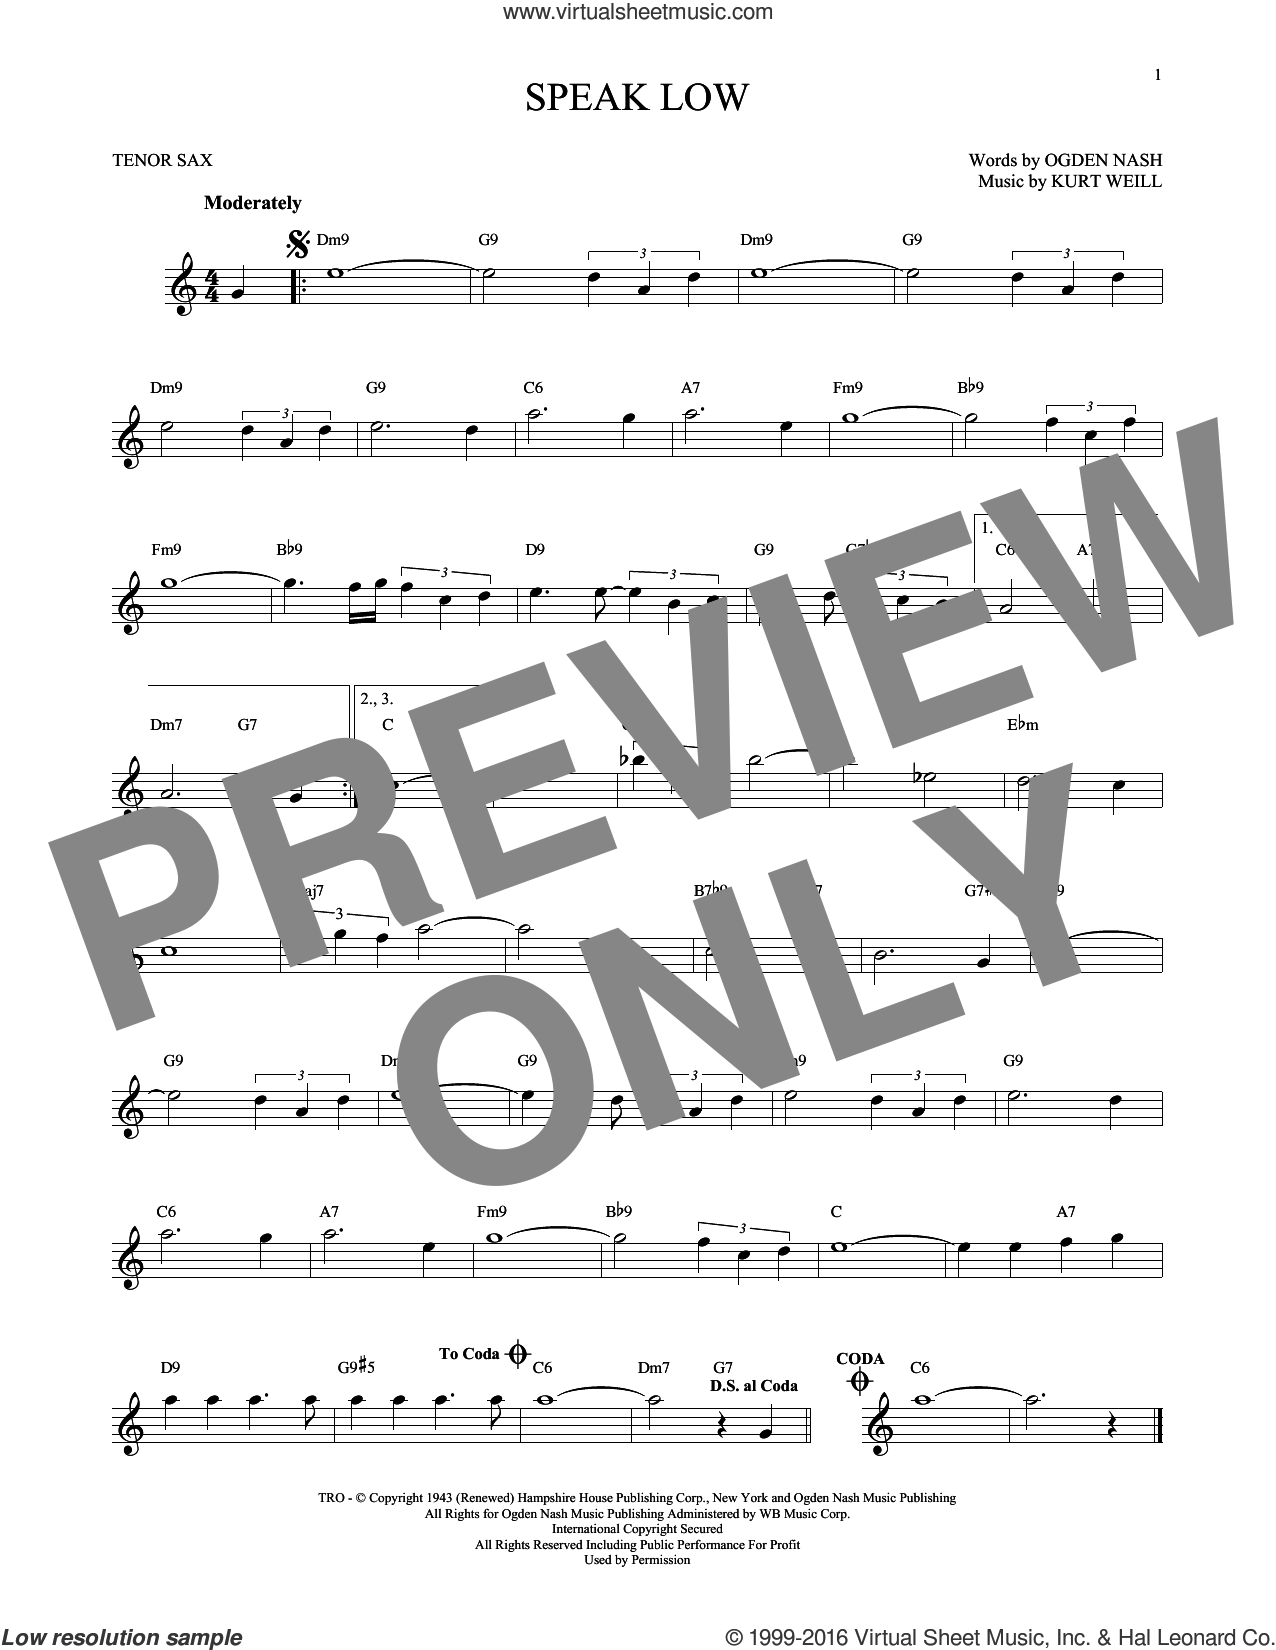 Speak Low sheet music for tenor saxophone solo by Kurt Weill and Ogden Nash, intermediate tenor saxophone. Score Image Preview.